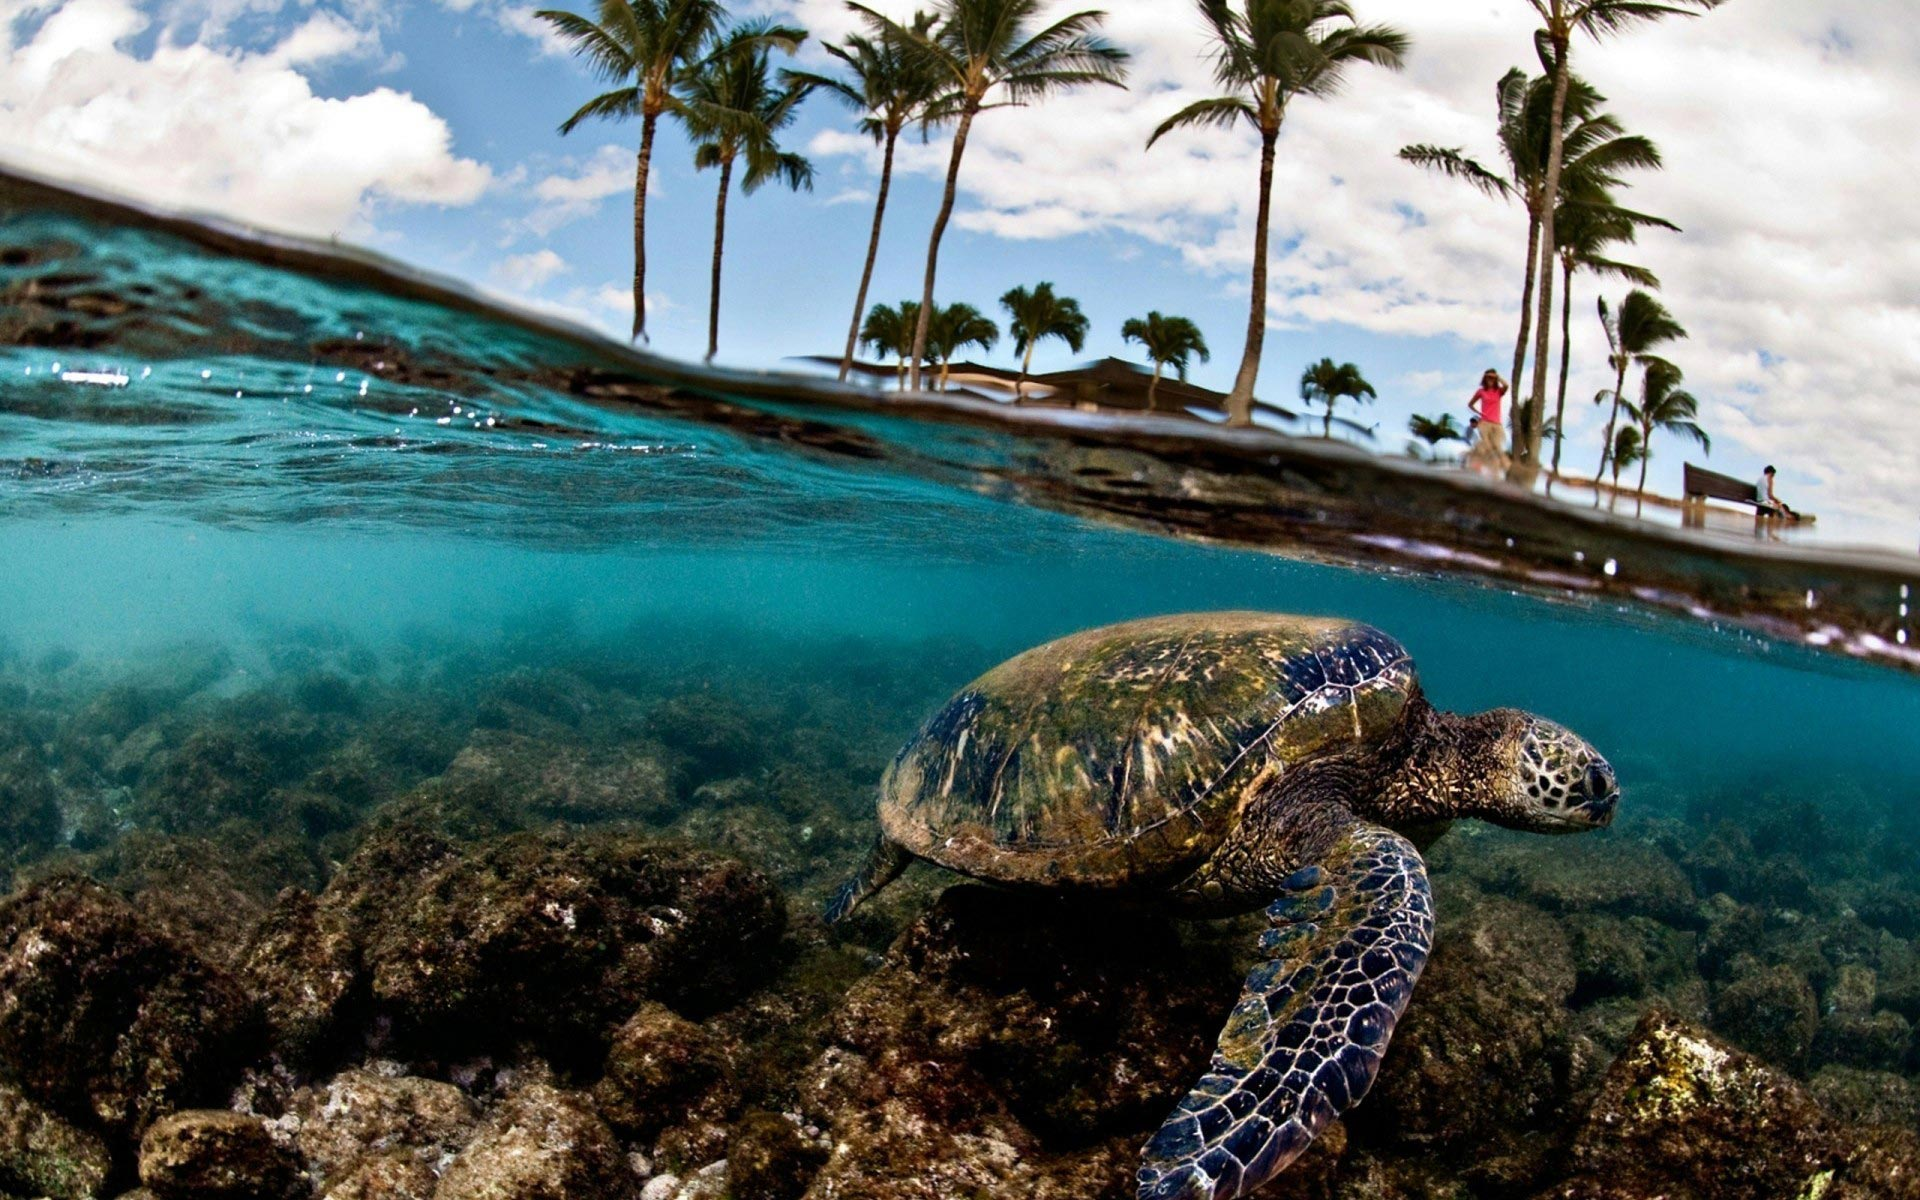 20 tropical backgrounds - photo #19